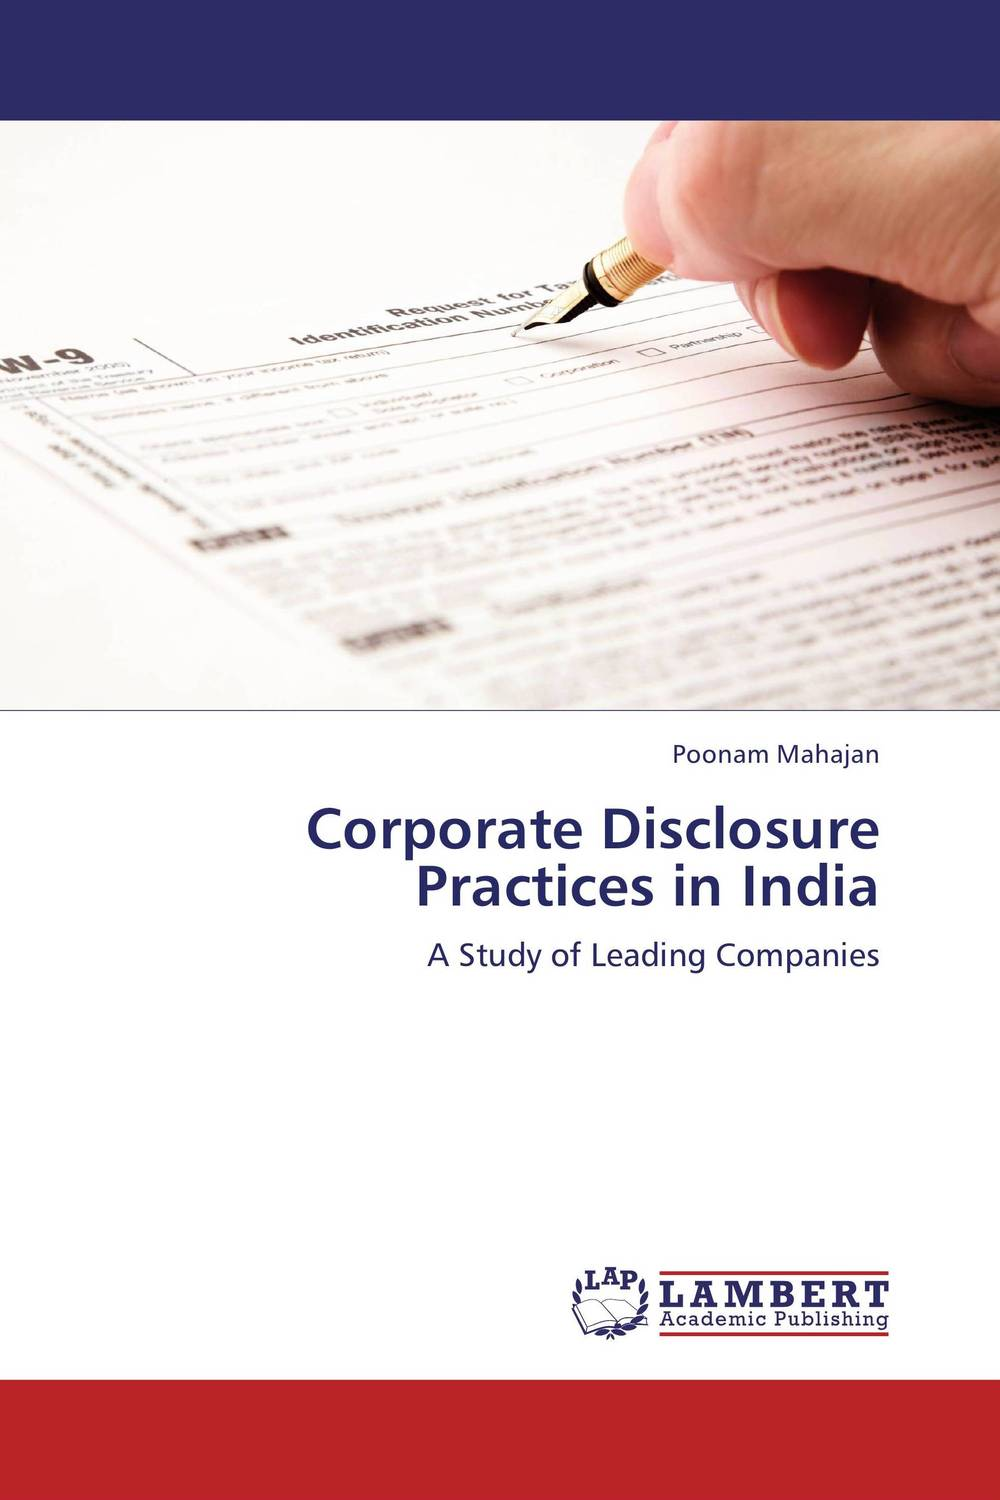 Corporate Disclosure Practices in India dysfunctions in accounting and the role of corporate lobbying